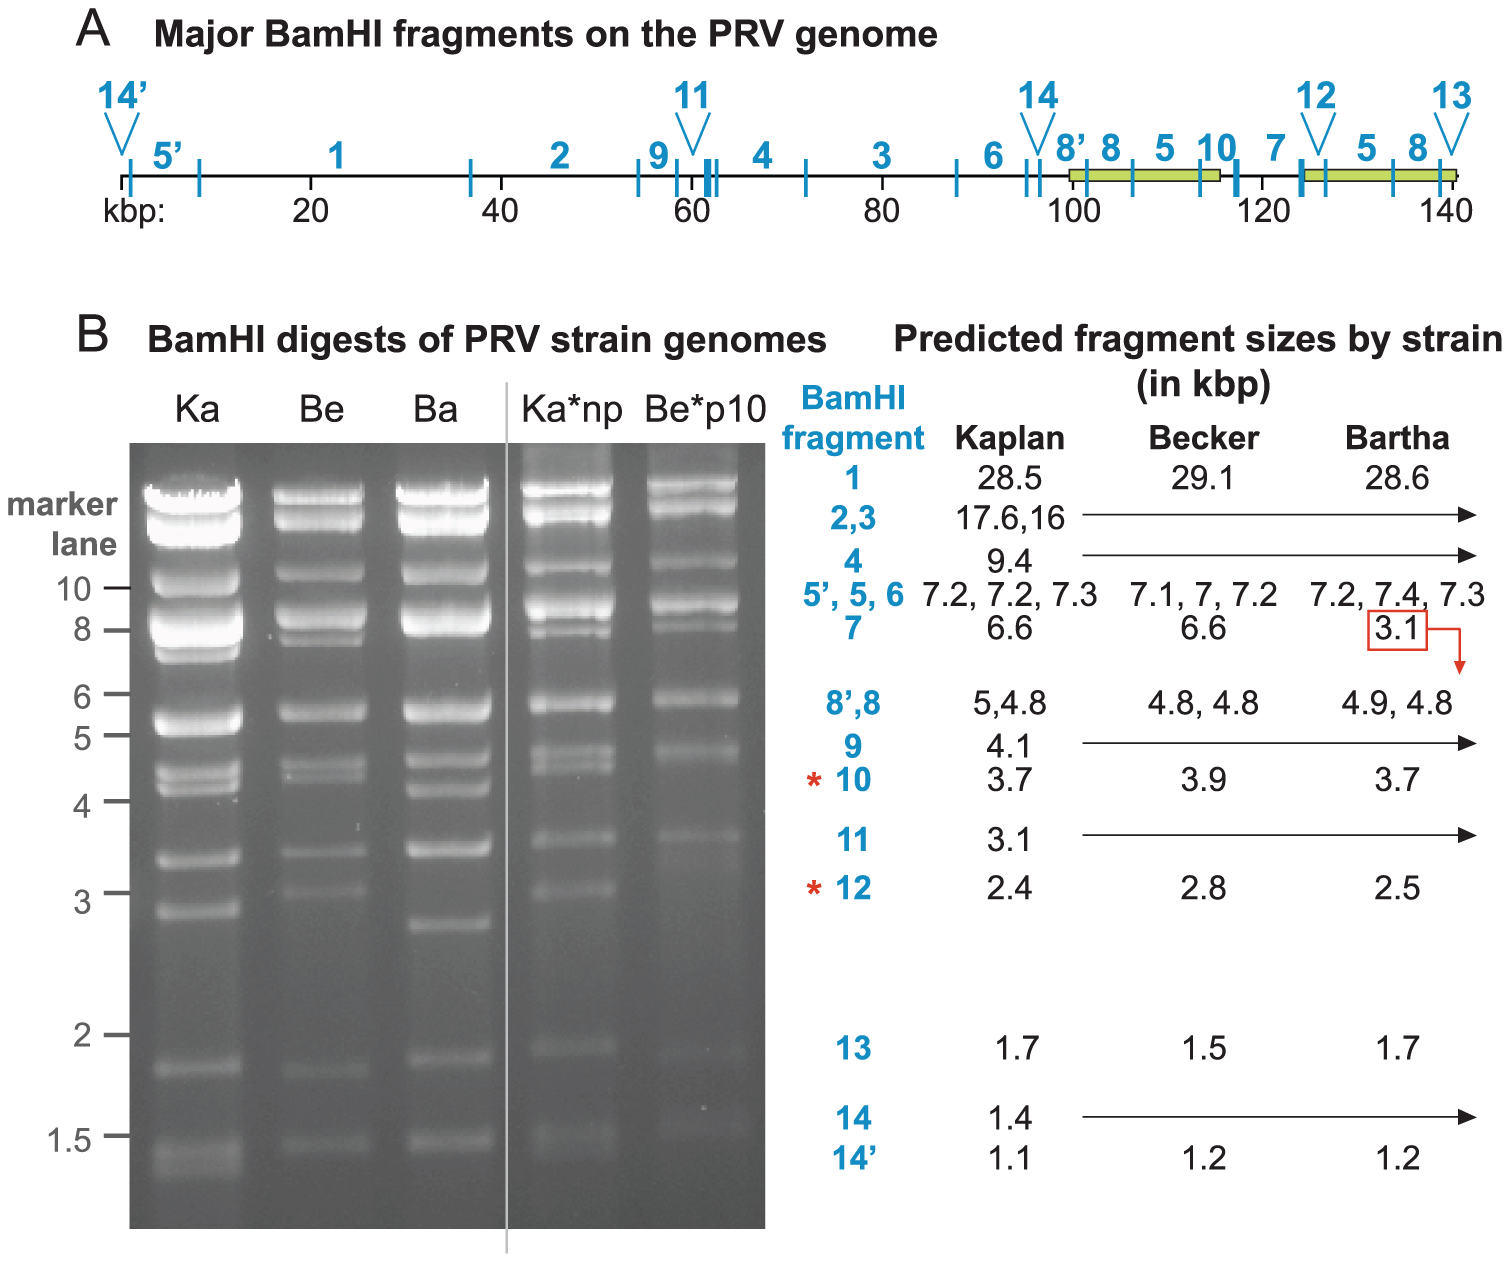 BamHI RFLP confirmation of PRV genome assemblies.